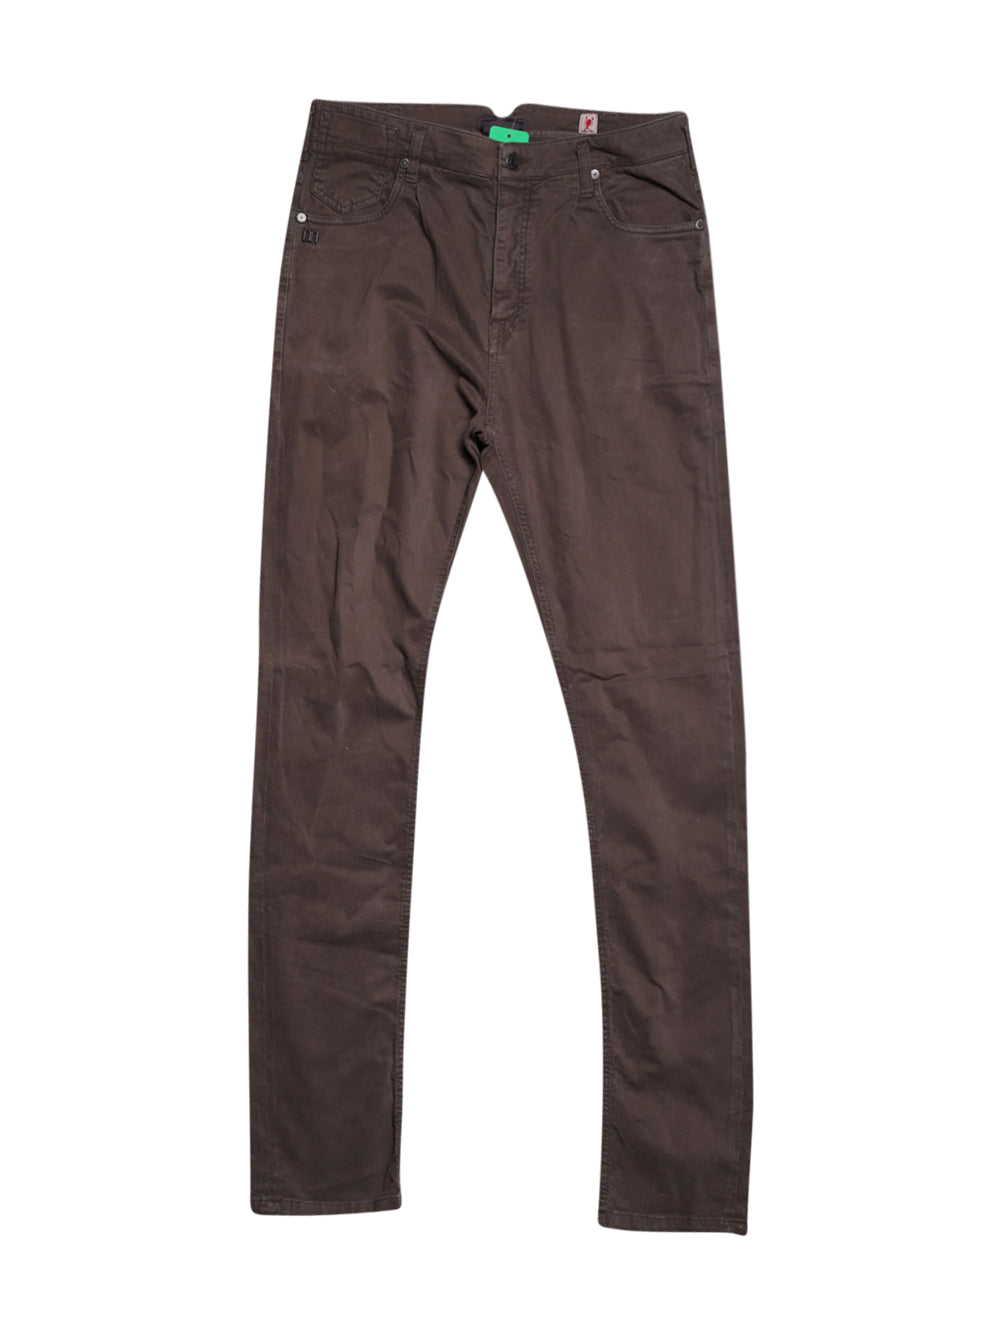 Front photo of Preloved Daniele Alessandrini Brown Man's trousers - size 32/XXS